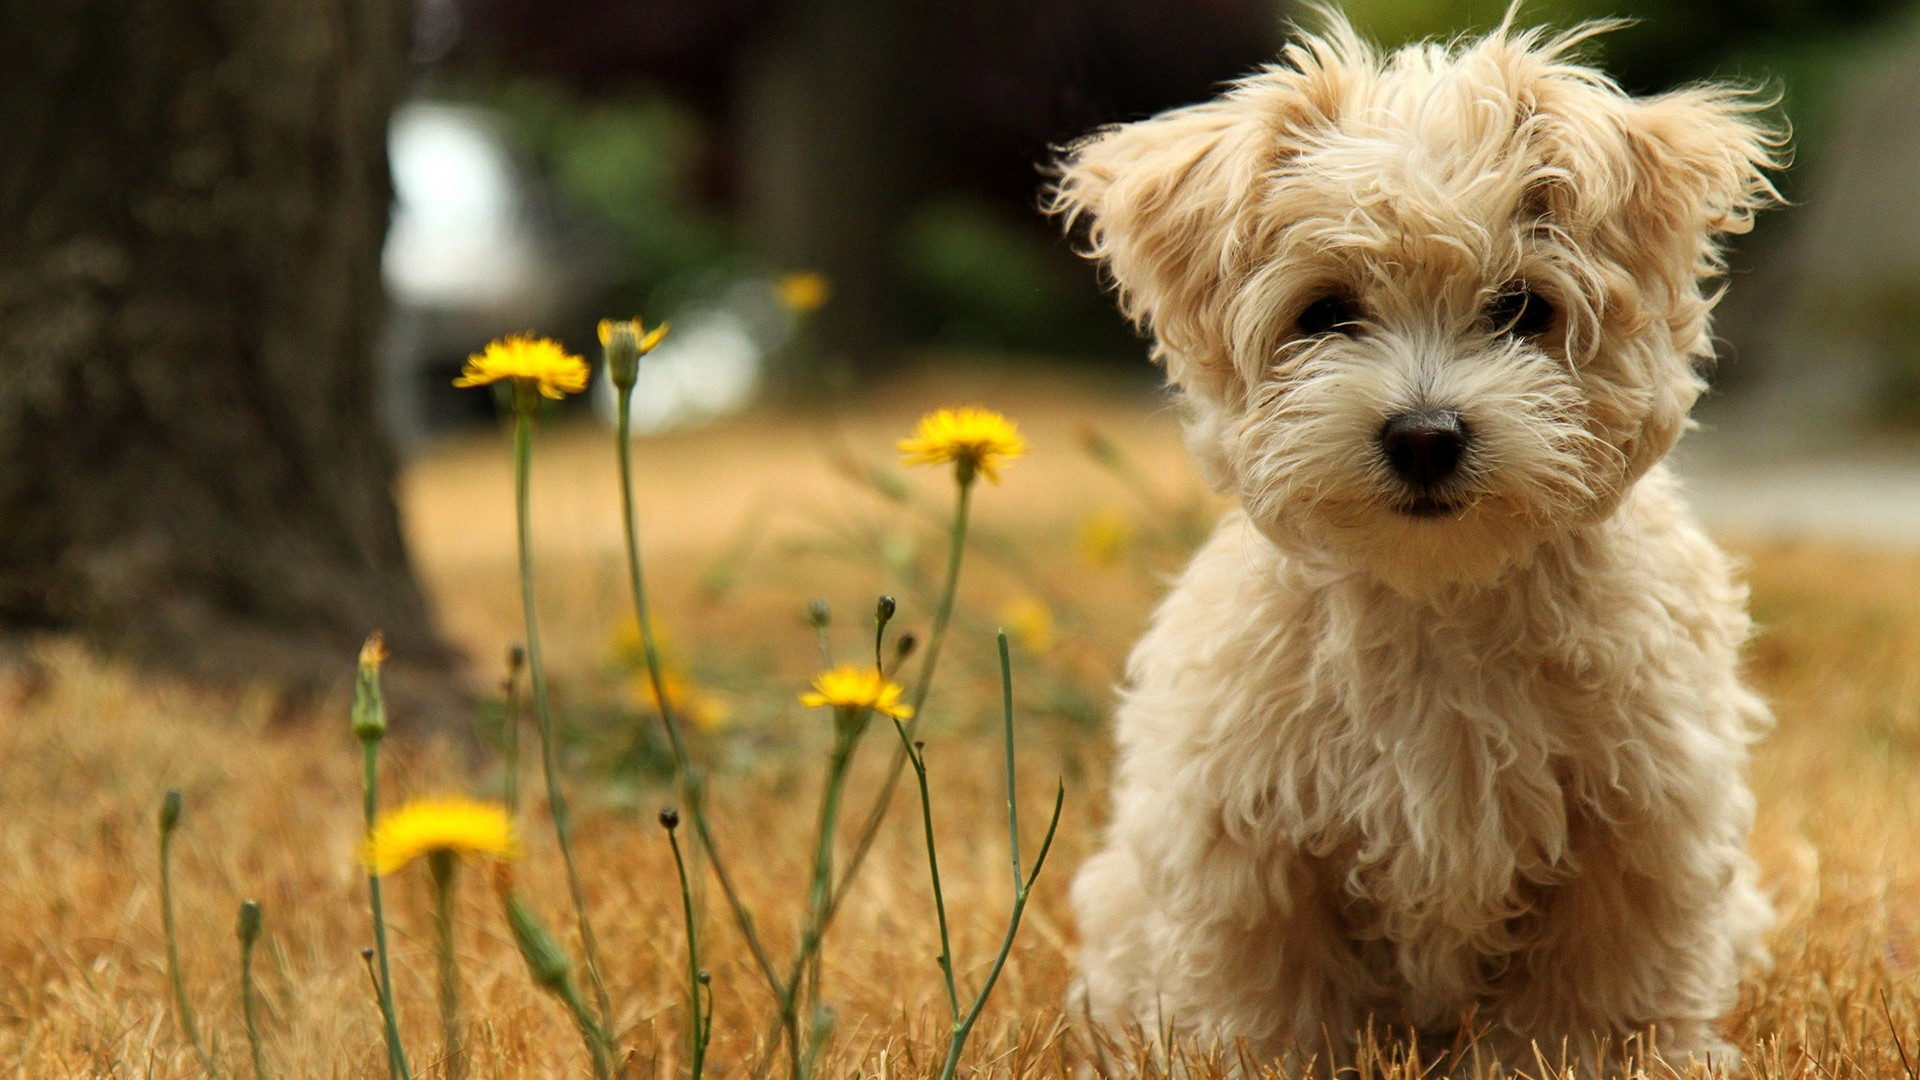 Here we have selected some cute dogs images.We update dog pictures, Beautiful Animal Pictures, Cute Animals,Cute Puppy Dog Photos regularly .